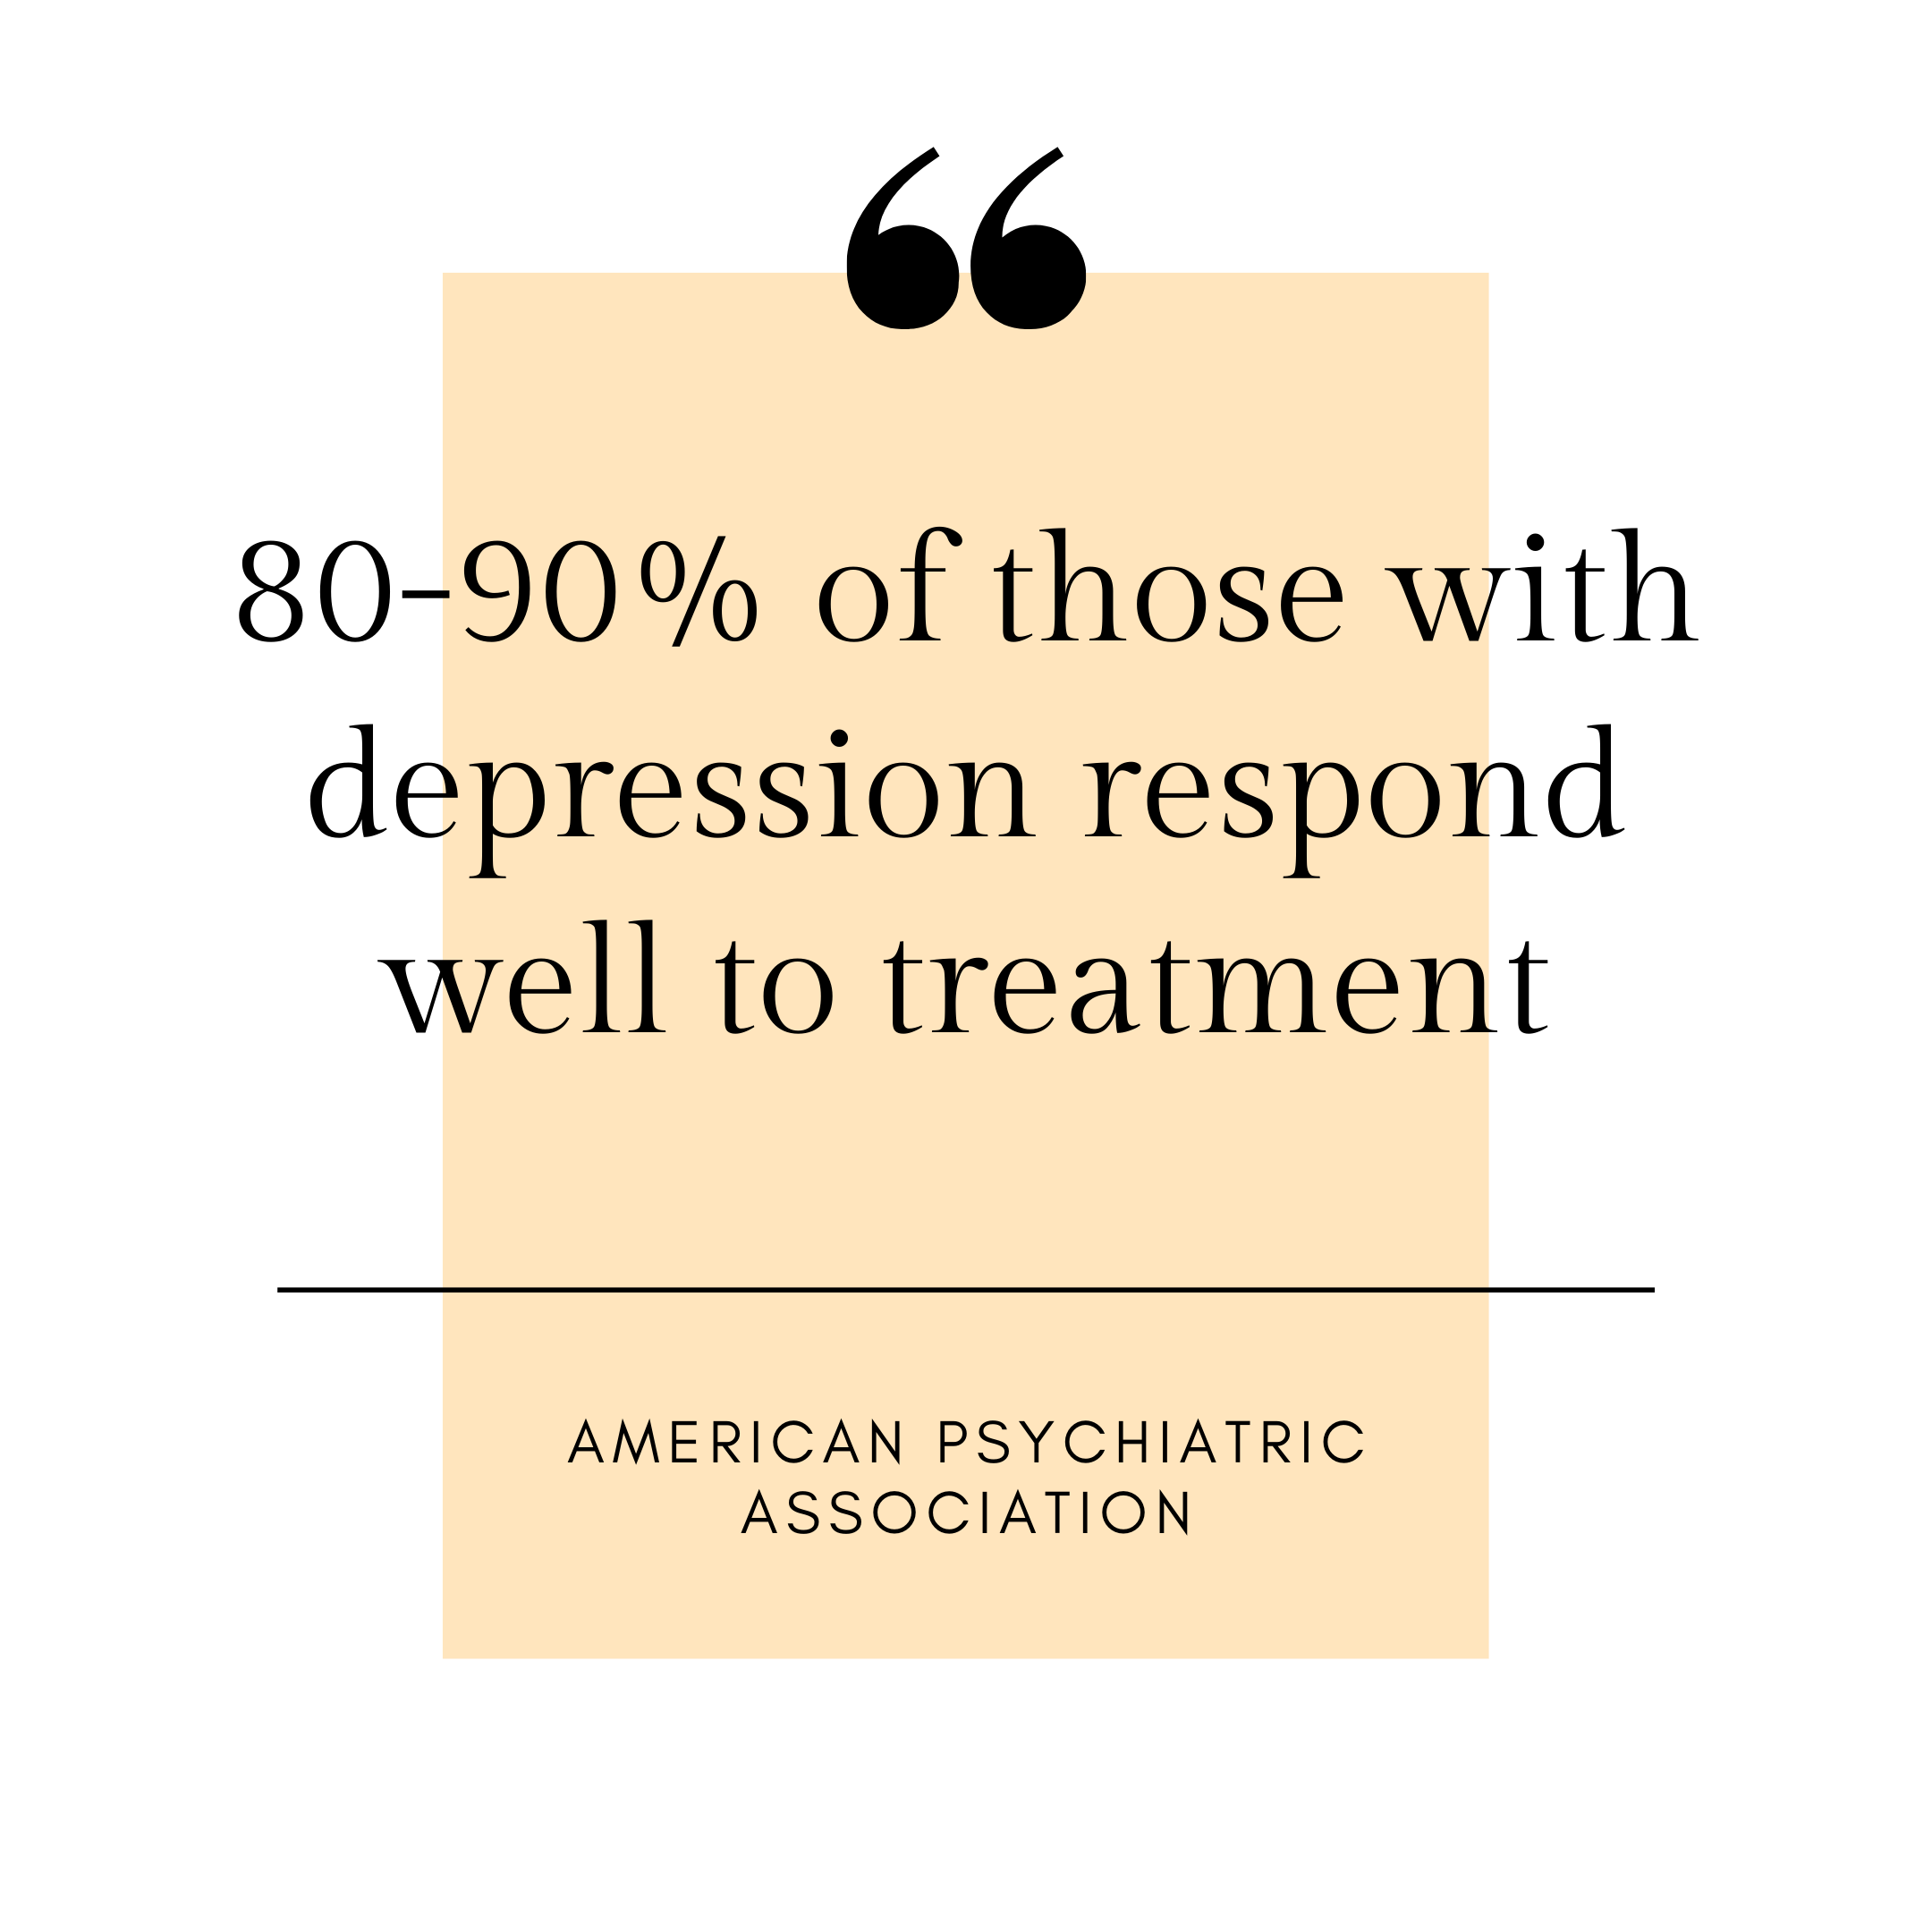 Depression Counselling - statistics for counselling success